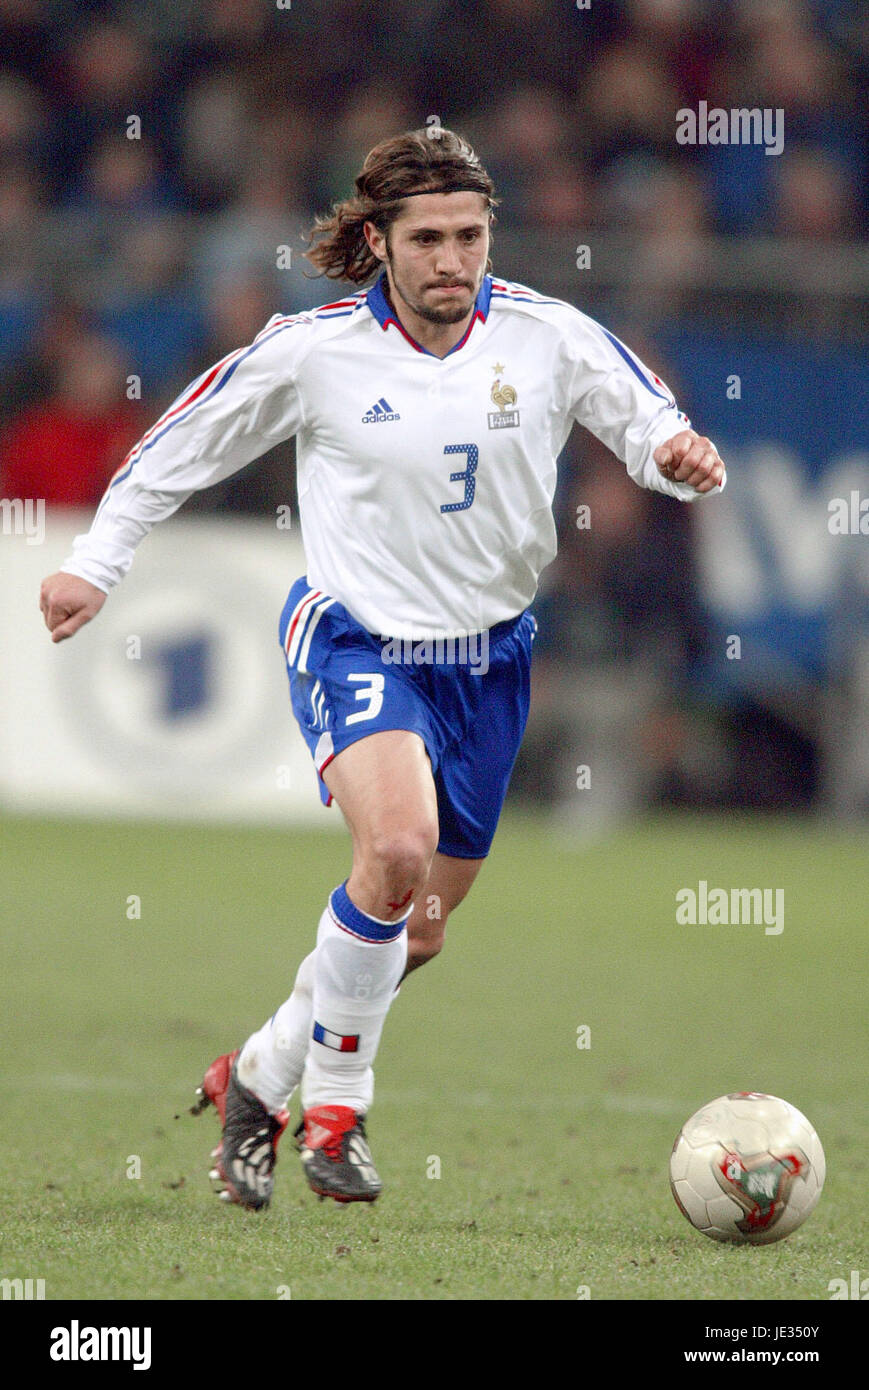 BIXENTE LIZARAZU FRANCE   BAYERN MUNICH GELSENKIRCHEN GERMANY 15     BIXENTE LIZARAZU FRANCE   BAYERN MUNICH GELSENKIRCHEN GERMANY 15 November  2003